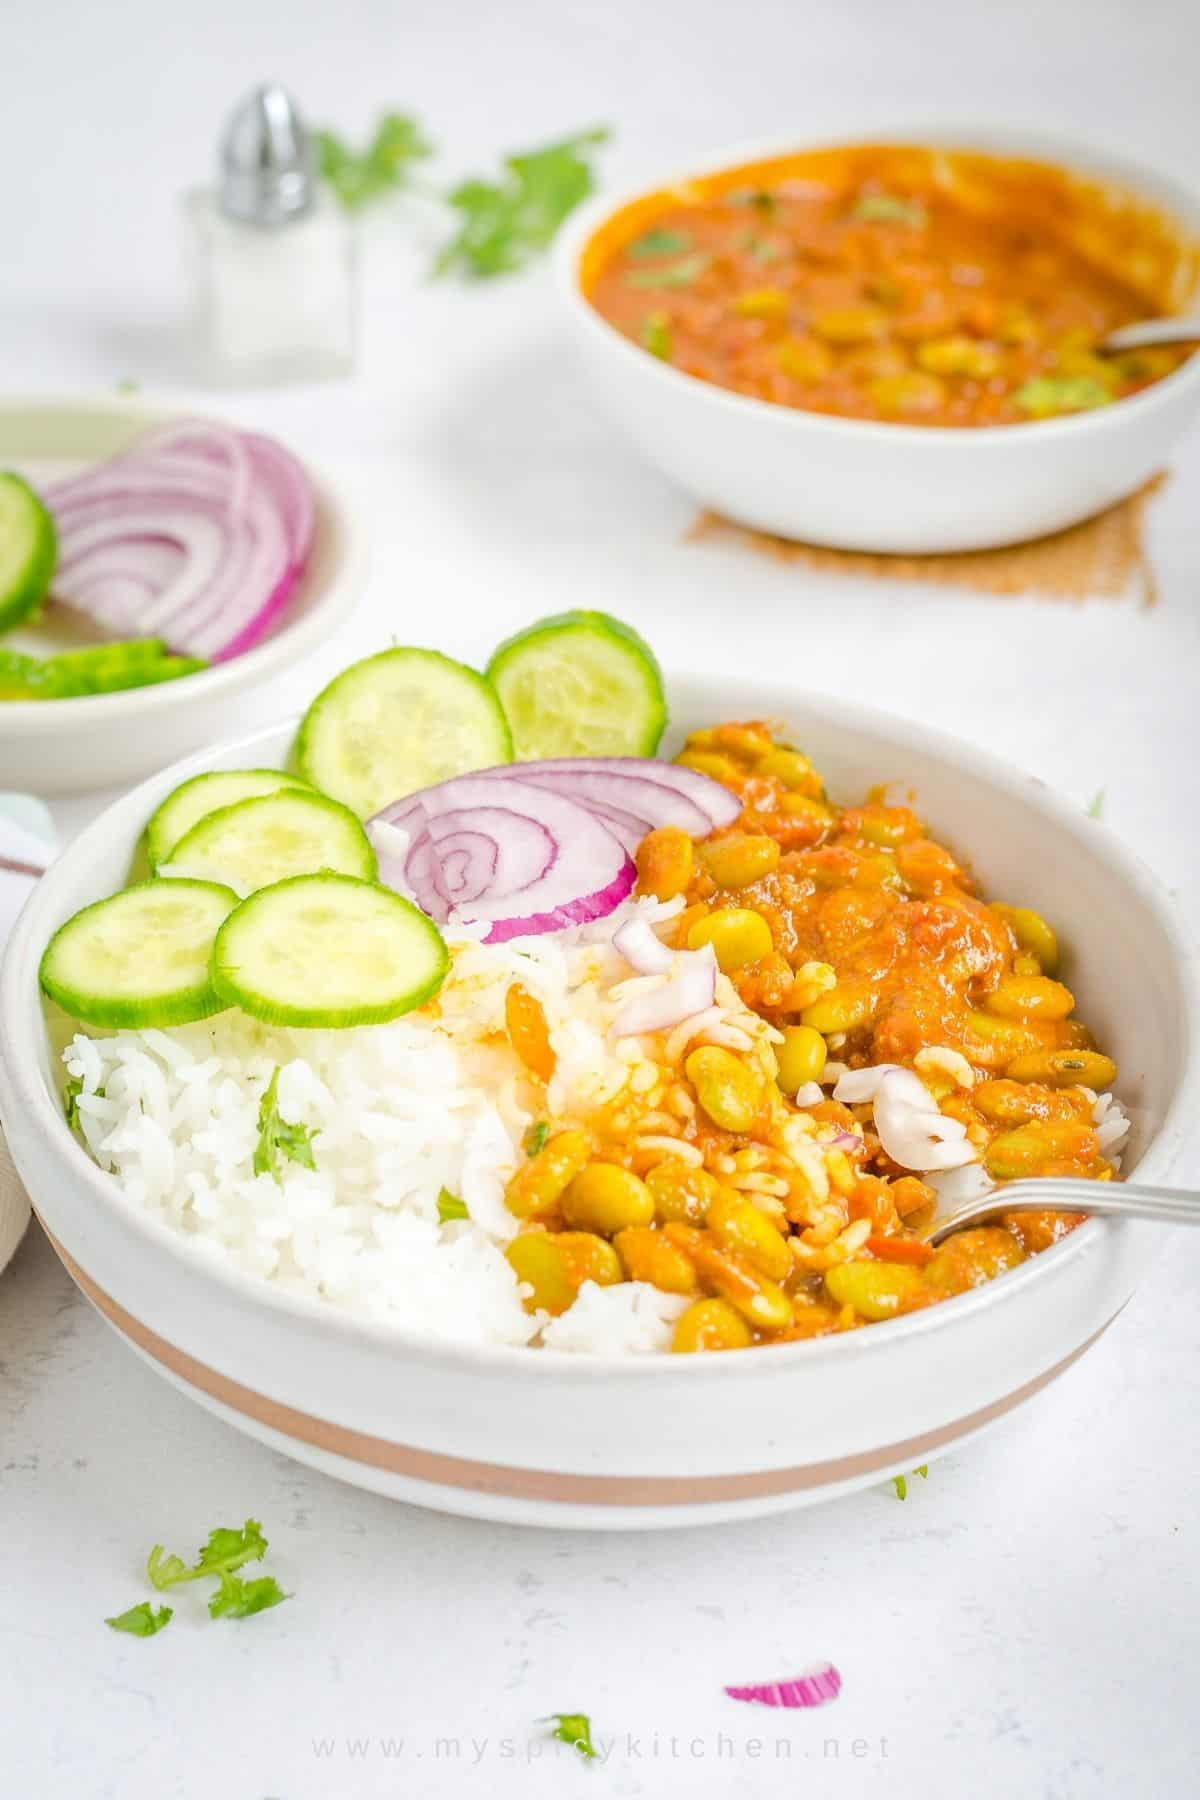 Bowl of rice, double beans curry, sliced cucumbers and onions.